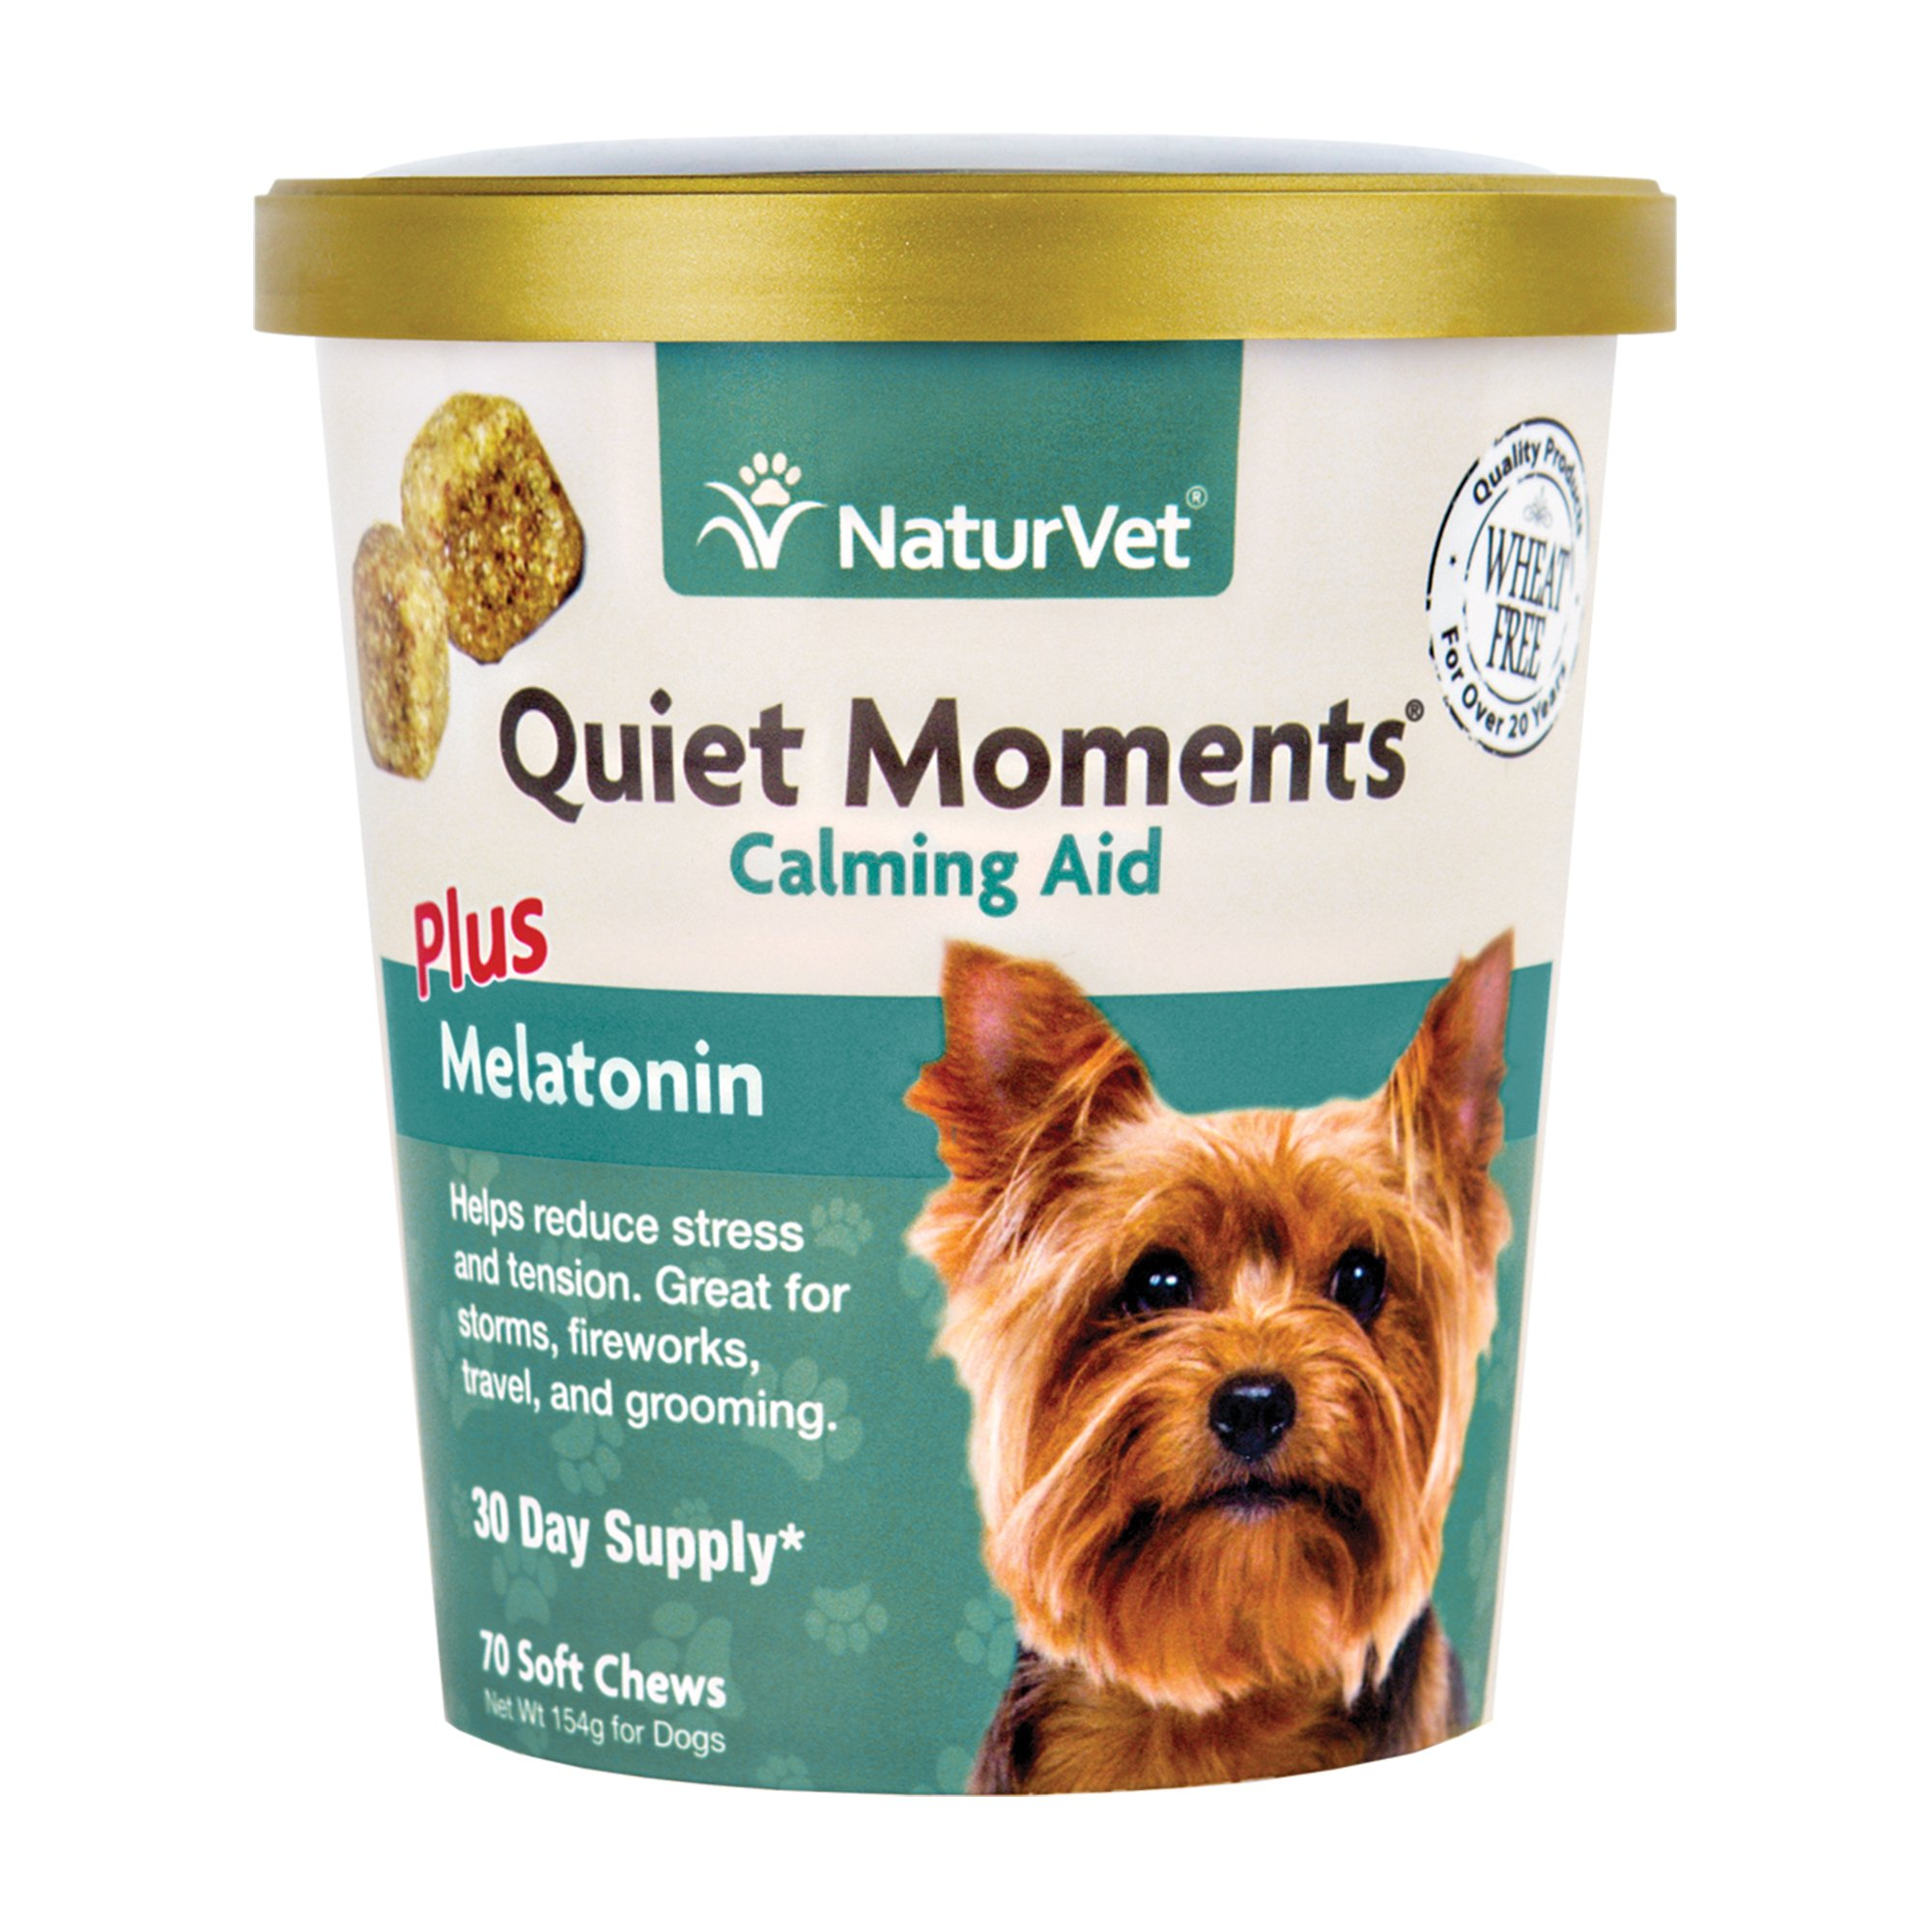 NaturVet Quiet Moments Calming Aid Soft Chew Supplement for Dogs, Reduce Stress and Anxiety with this Veterinarian formulated calming supplement by